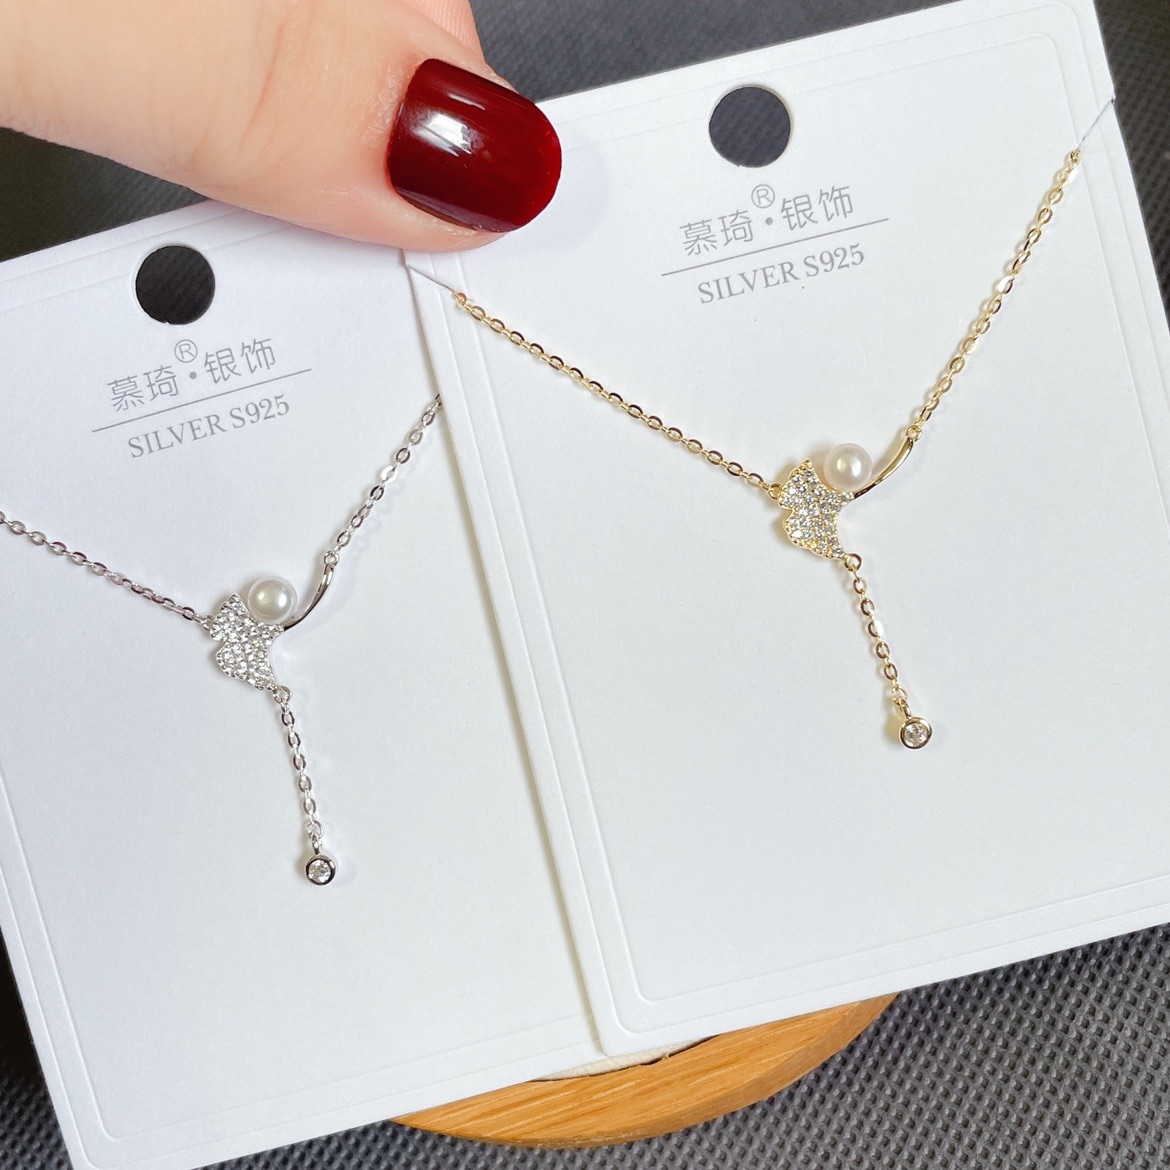 Muqi silver jewelry whole body S925 Sterling Silver micro inlaid zircon pearl ginkgo leaf small and exquisite clavicle necklace for women